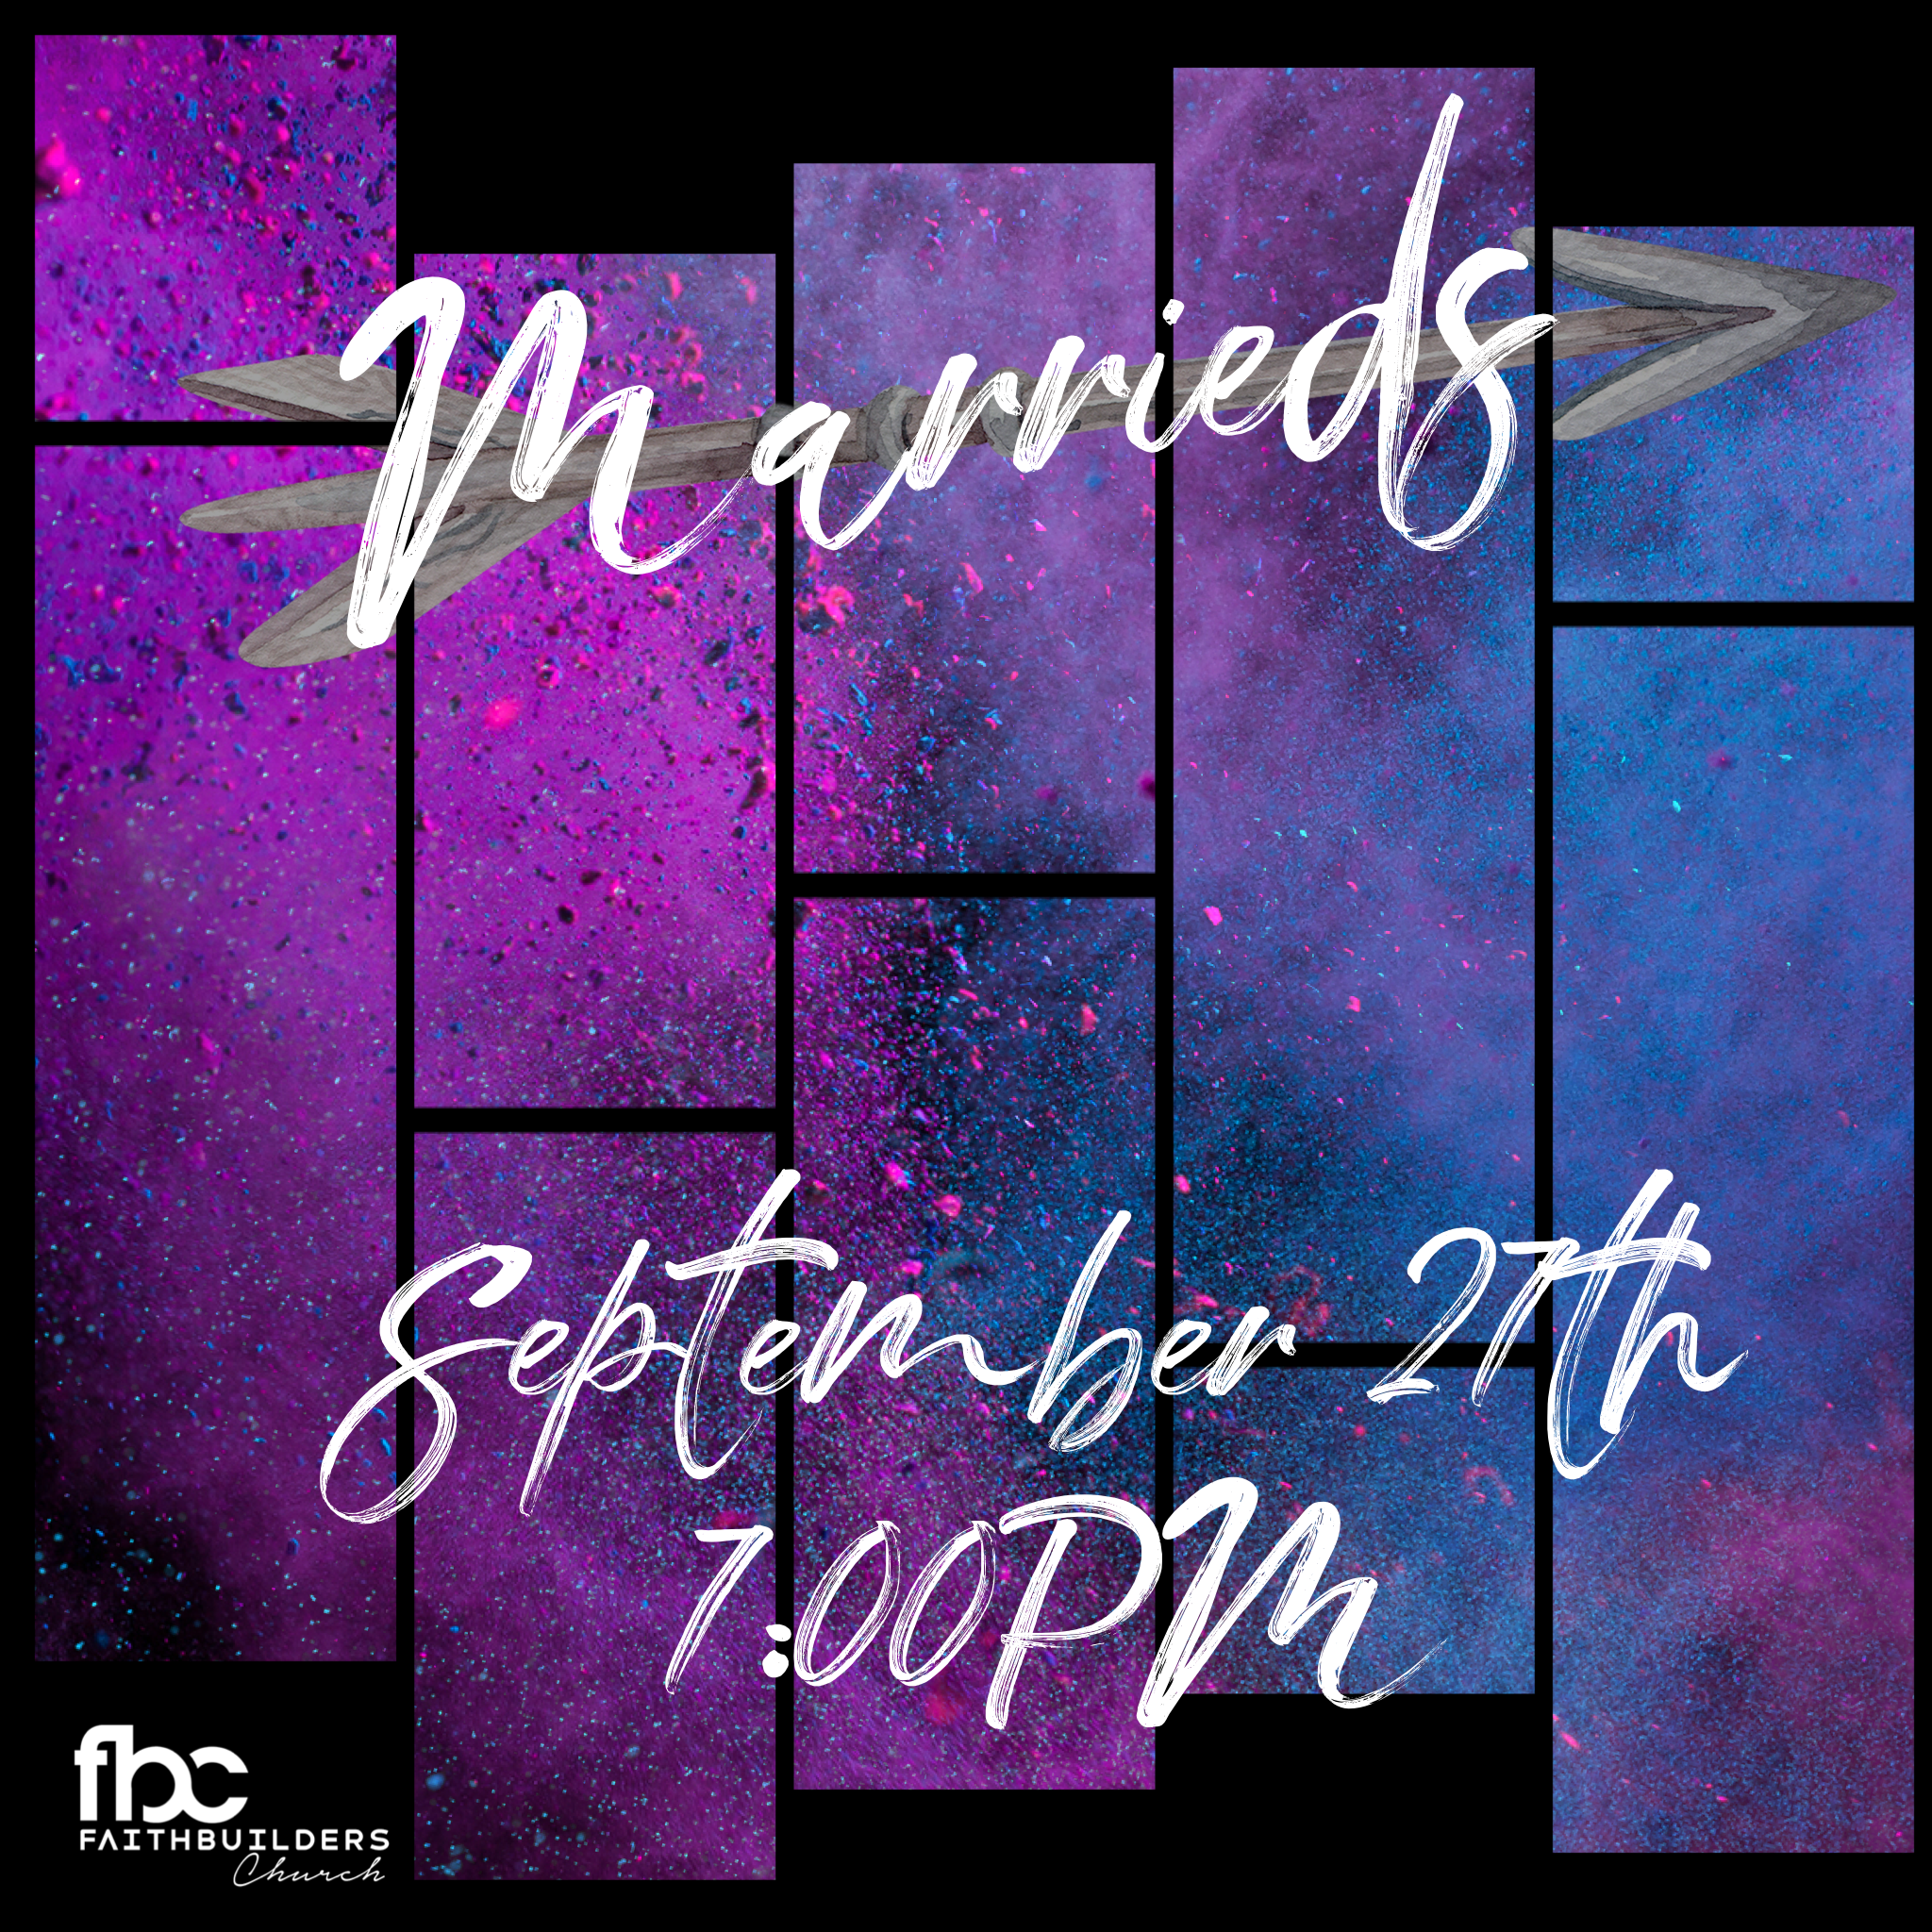 Marrieds Night! - Friday, September 27 7:00PMPastor Matt & Ginger McLamb's Home5541 West Saguaro DriveGlendale, AZ 85304